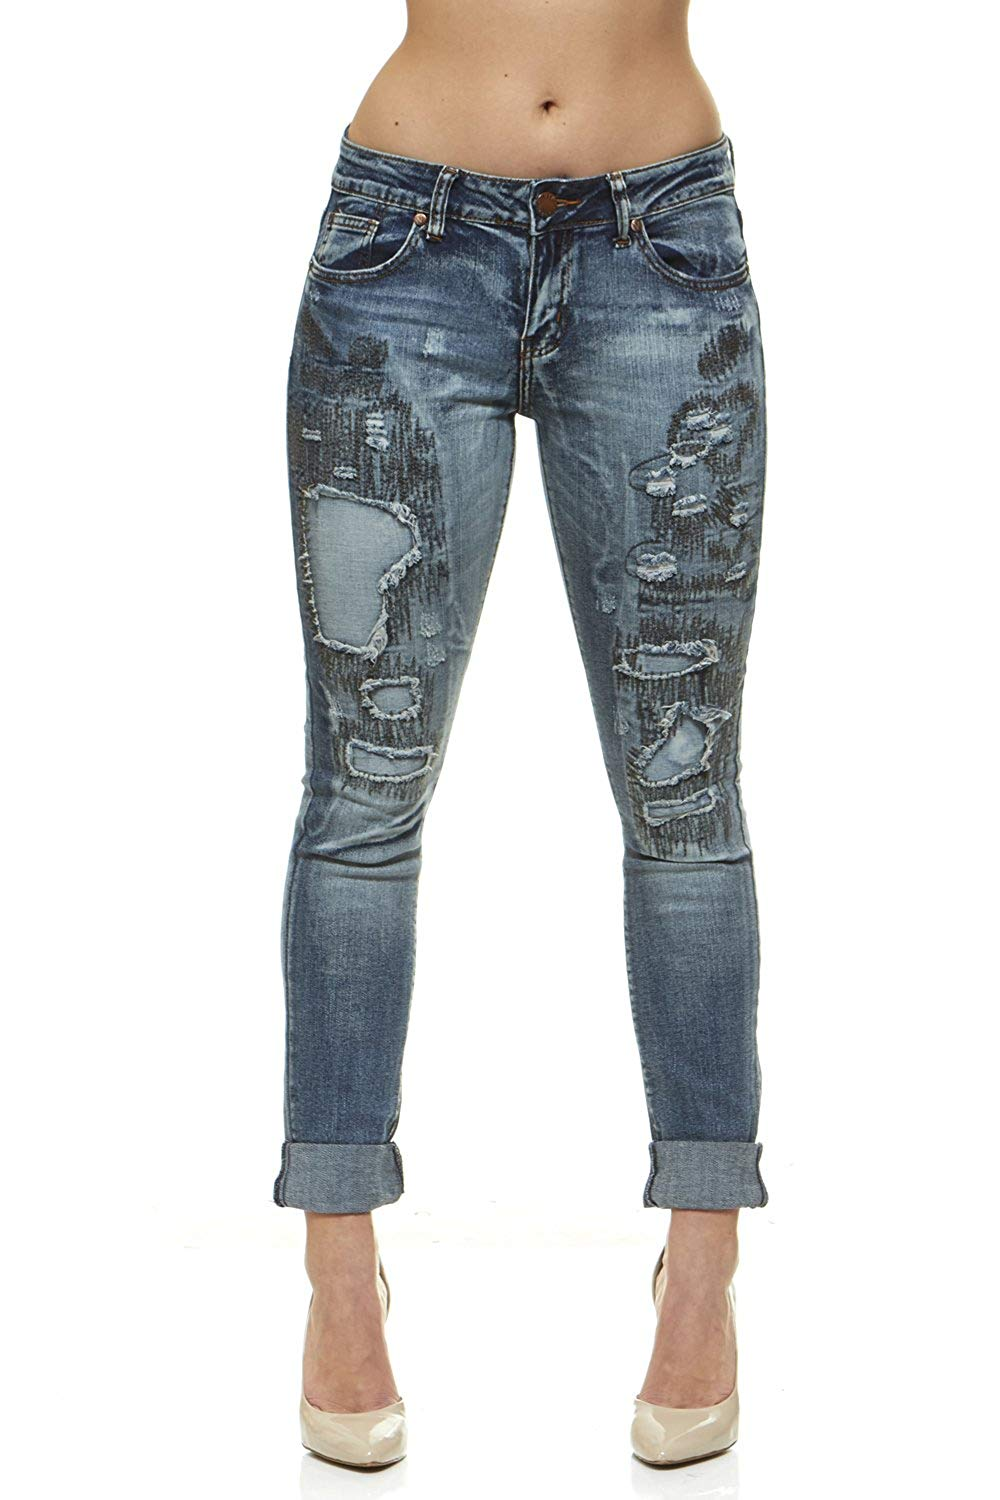 810cd6f948b Get Quotations · V.I.P.JEANS Jeans for Women Distressed Skinny Ripped Jeans  Slim Fit Stretchy Dark Wash Junior Size